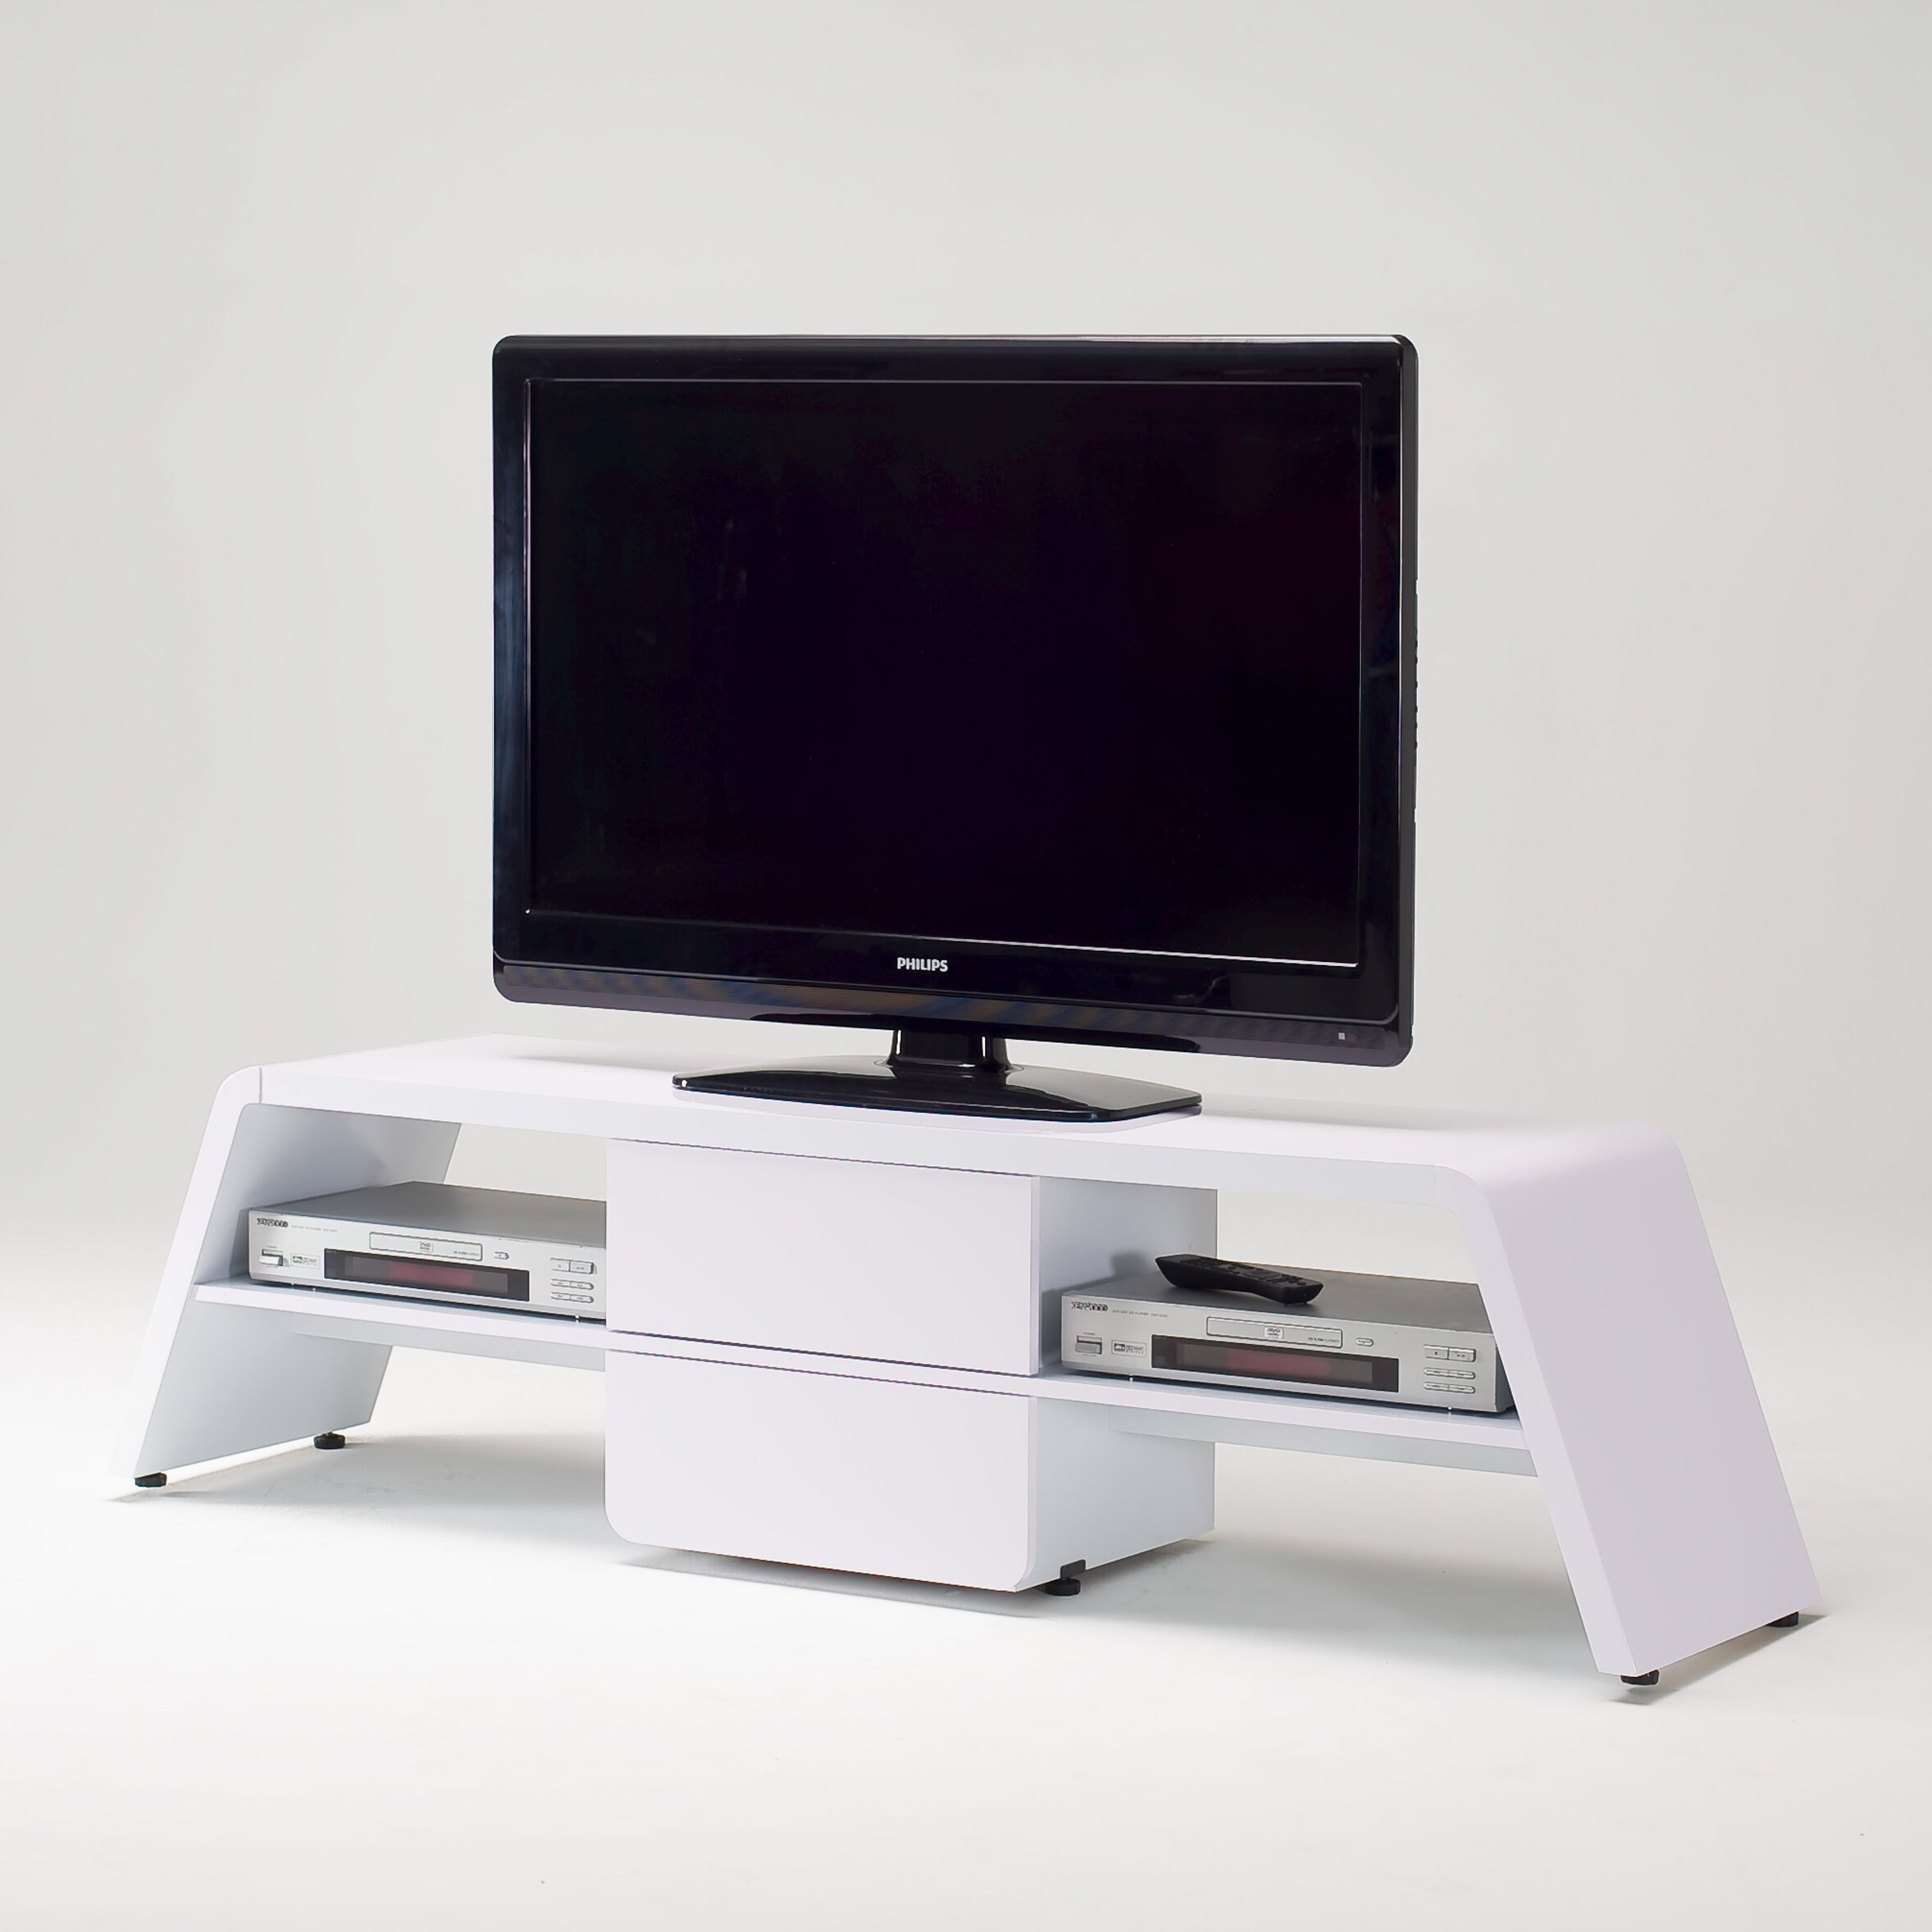 jahnke cuuba culture m 170 tv stand for tvs up to 70 wayfair uk. Black Bedroom Furniture Sets. Home Design Ideas